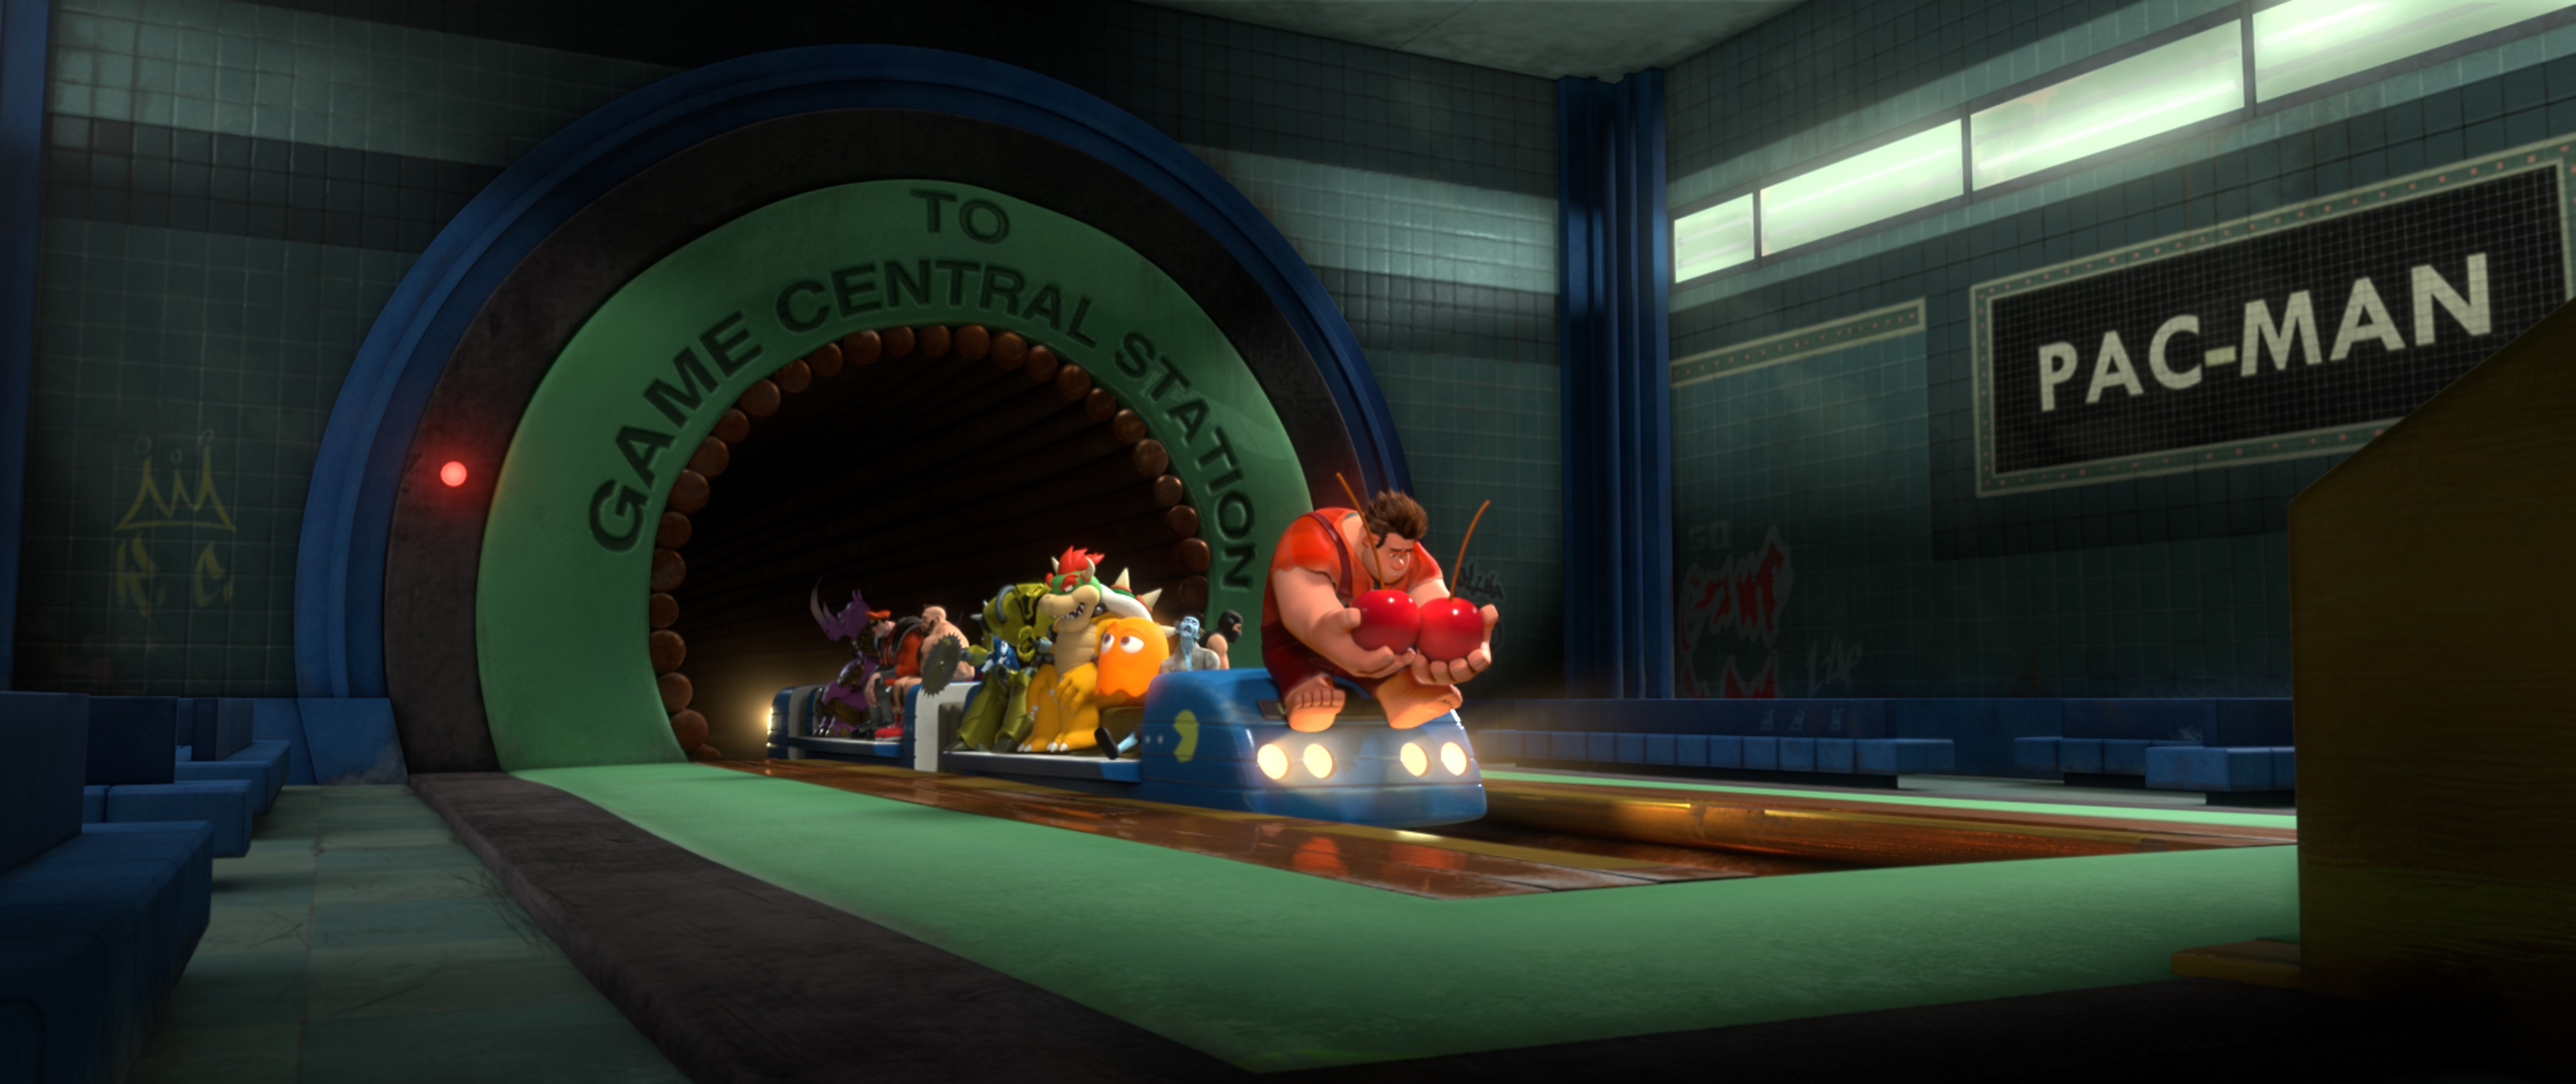 "BAD-GUY BLUES - Wreck-It Ralph and a few fellow arcade-game bad guys head back to their games via Game Central Station following a BadAnon support group meeting where Ralph learns that being a Bad Guy in his game doesn't make him a bad guy. Still, he can't help but wonder what it would be like to be the hero. ""Wreck-It Ralph"" hits theaters Nov. 2, 2012, in Disney Digital 3D™ in select theaters. © 2012 Disney. All Rights Reserved."